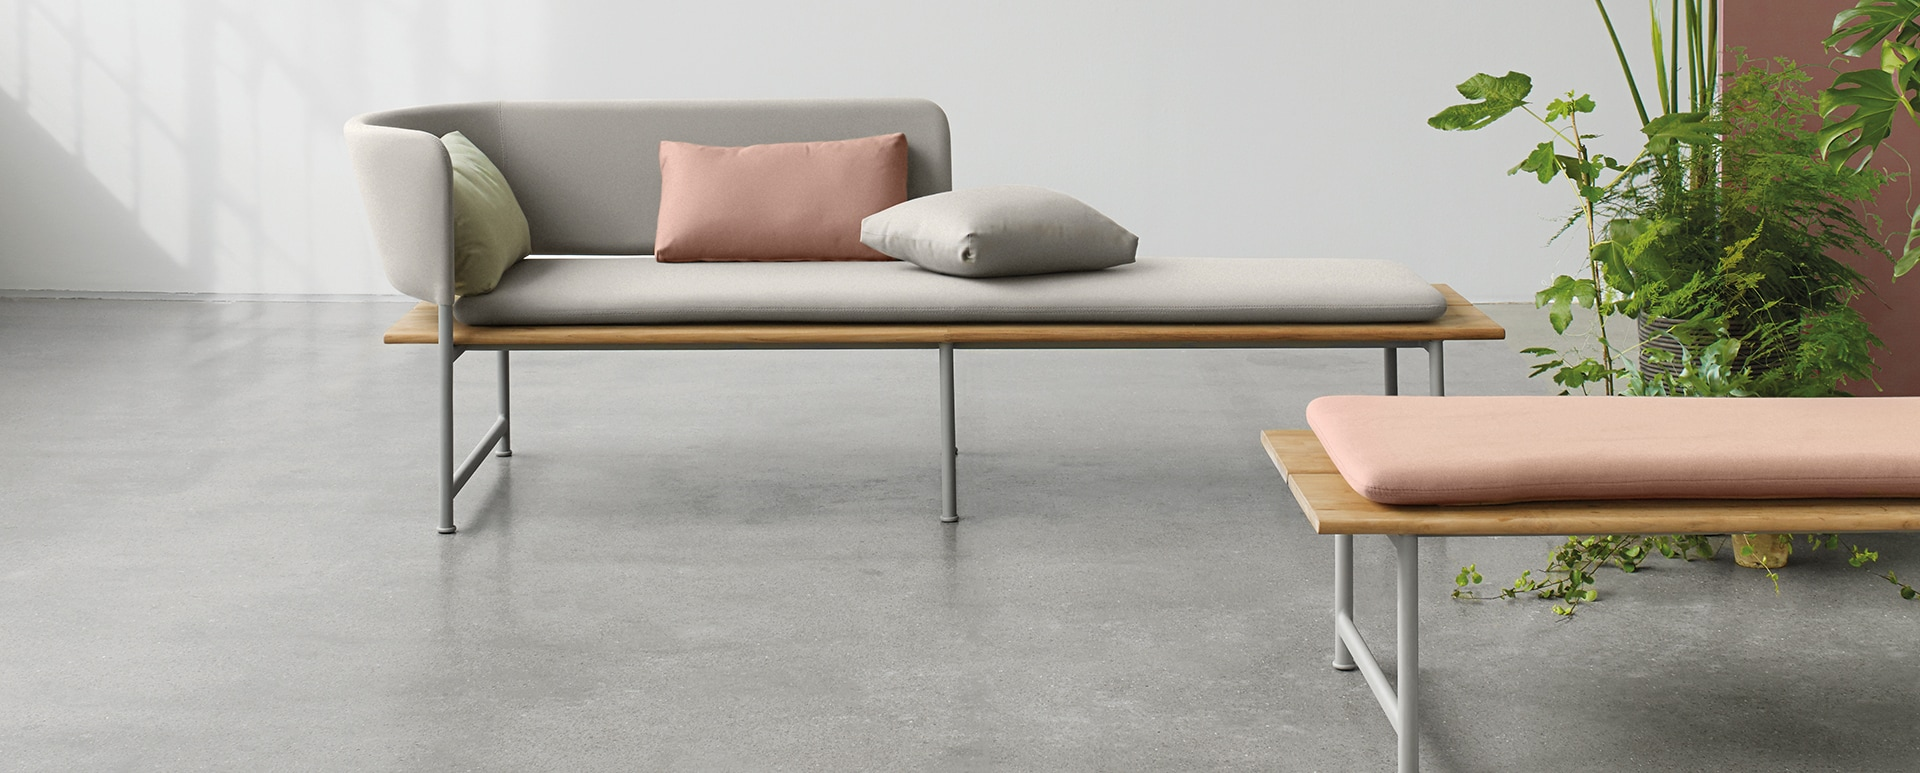 High-end outdoor furniture collection, Atmosphere by Cecilie Manz